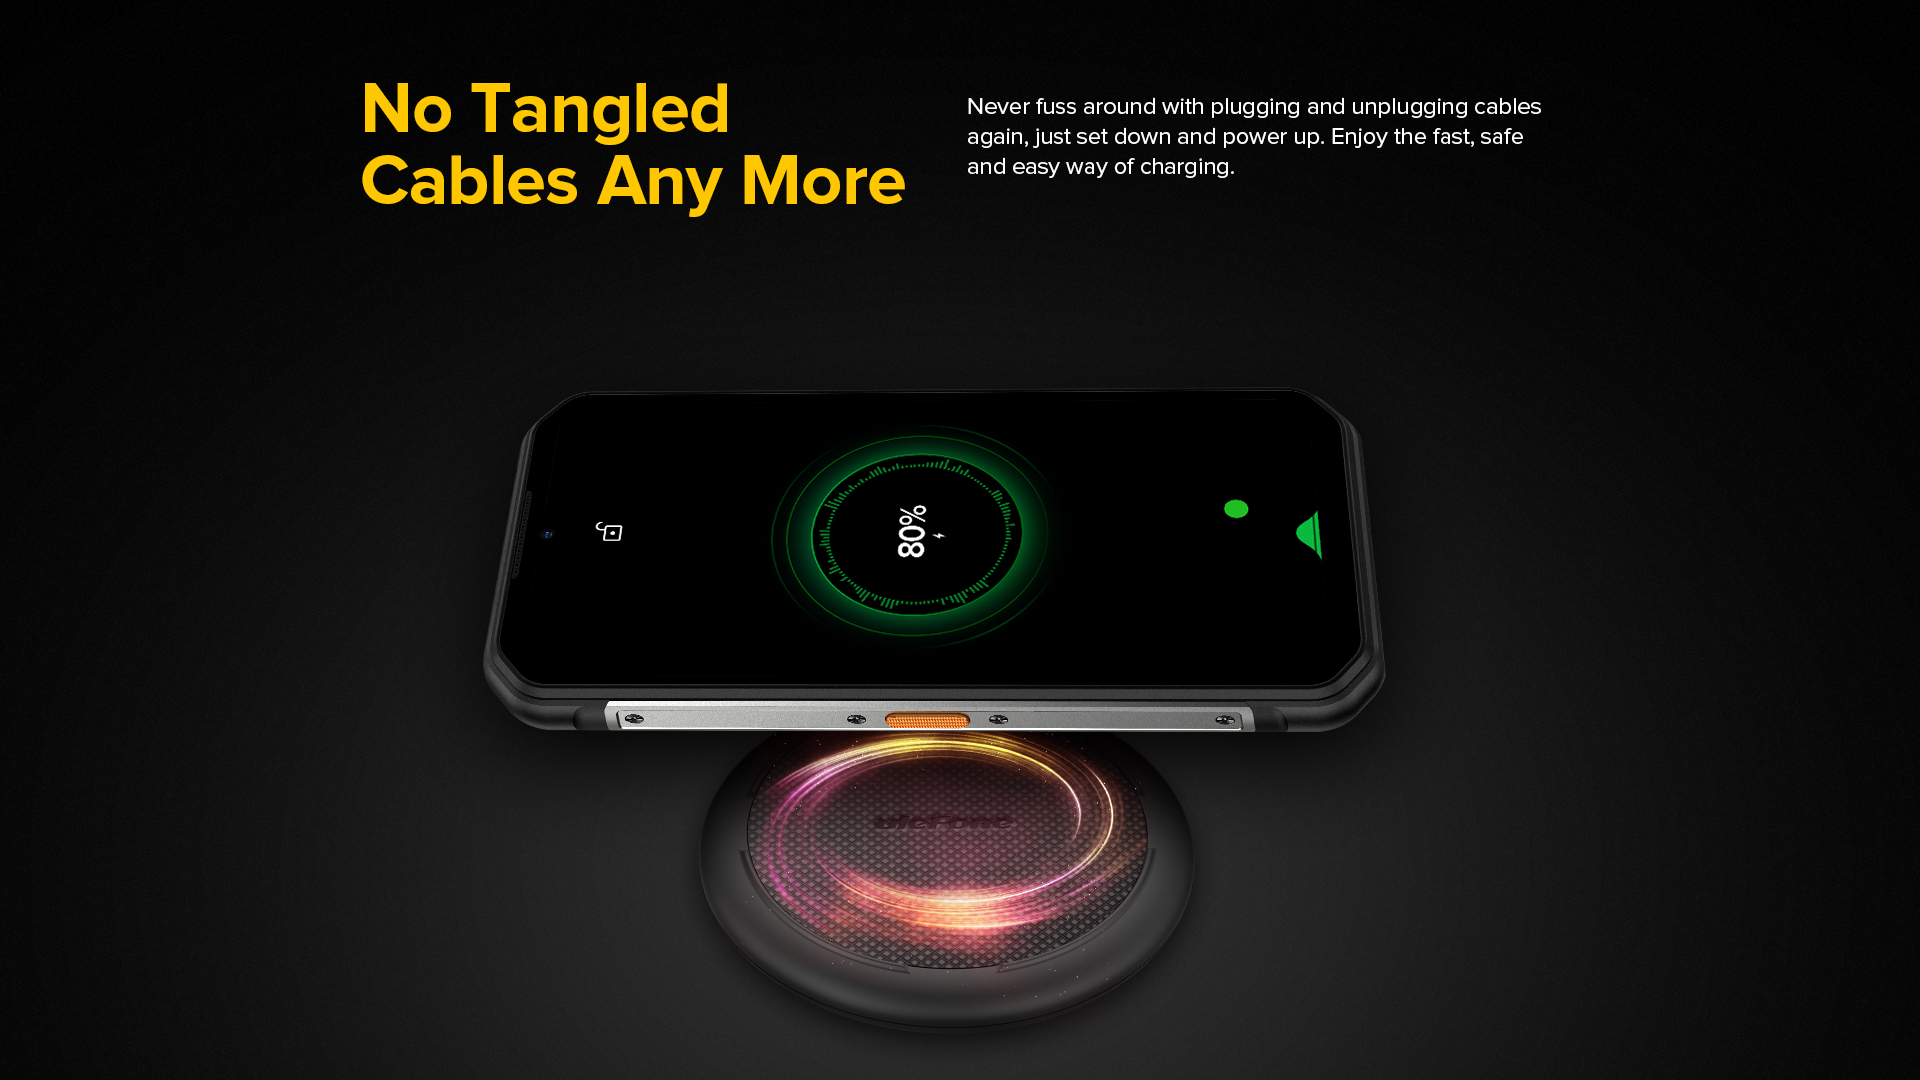 QI Wireless charging capable